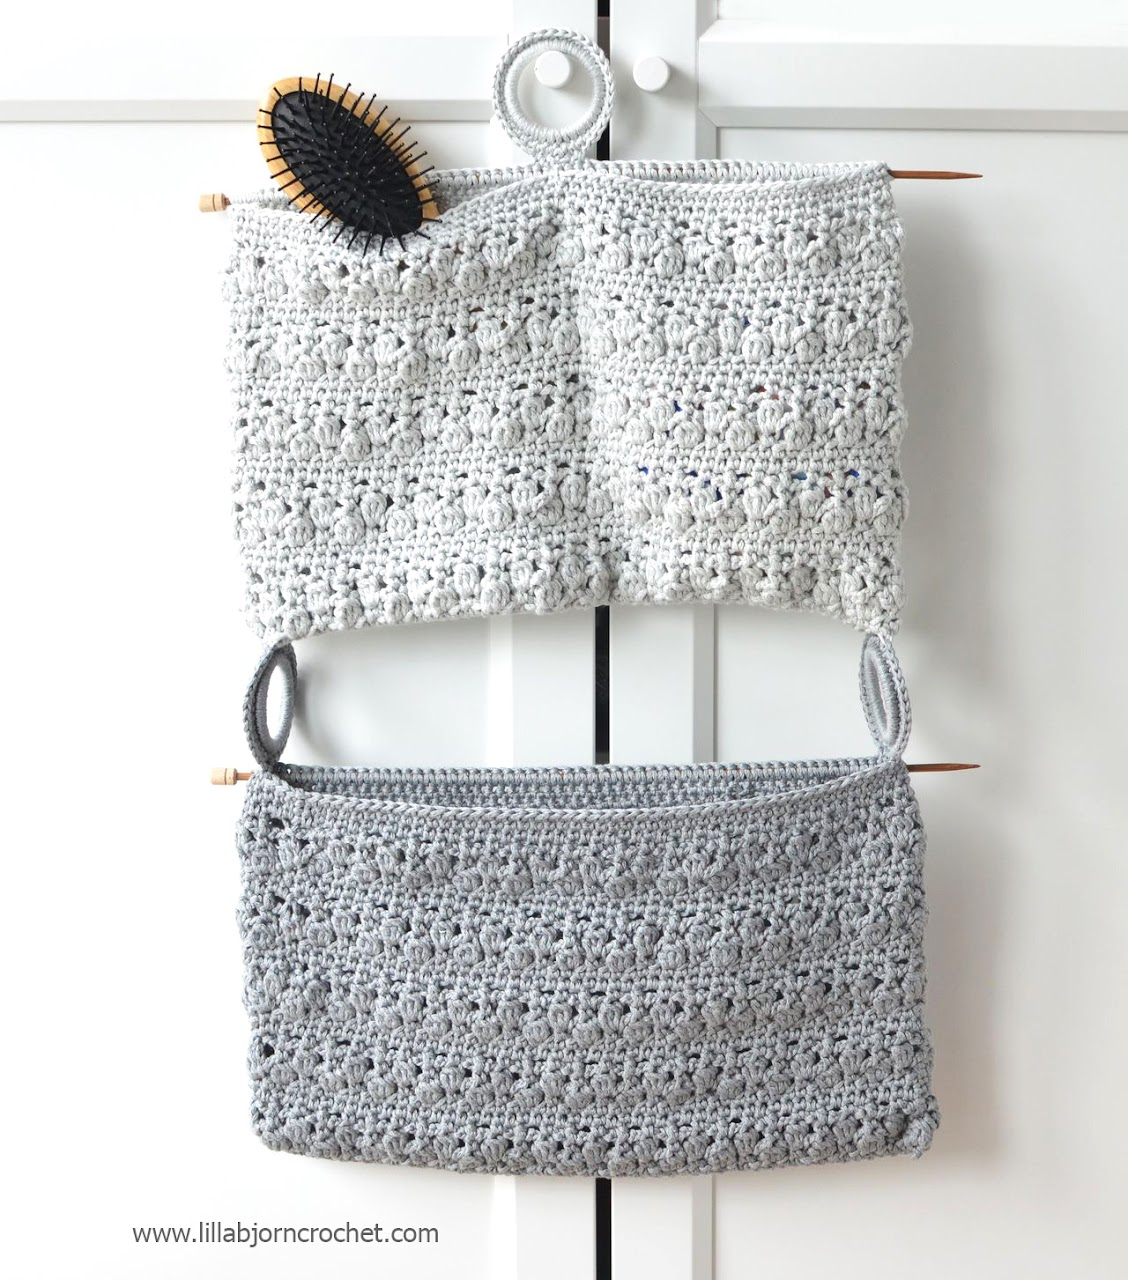 Bathroom Organizer: reveal of a new crochet design ...